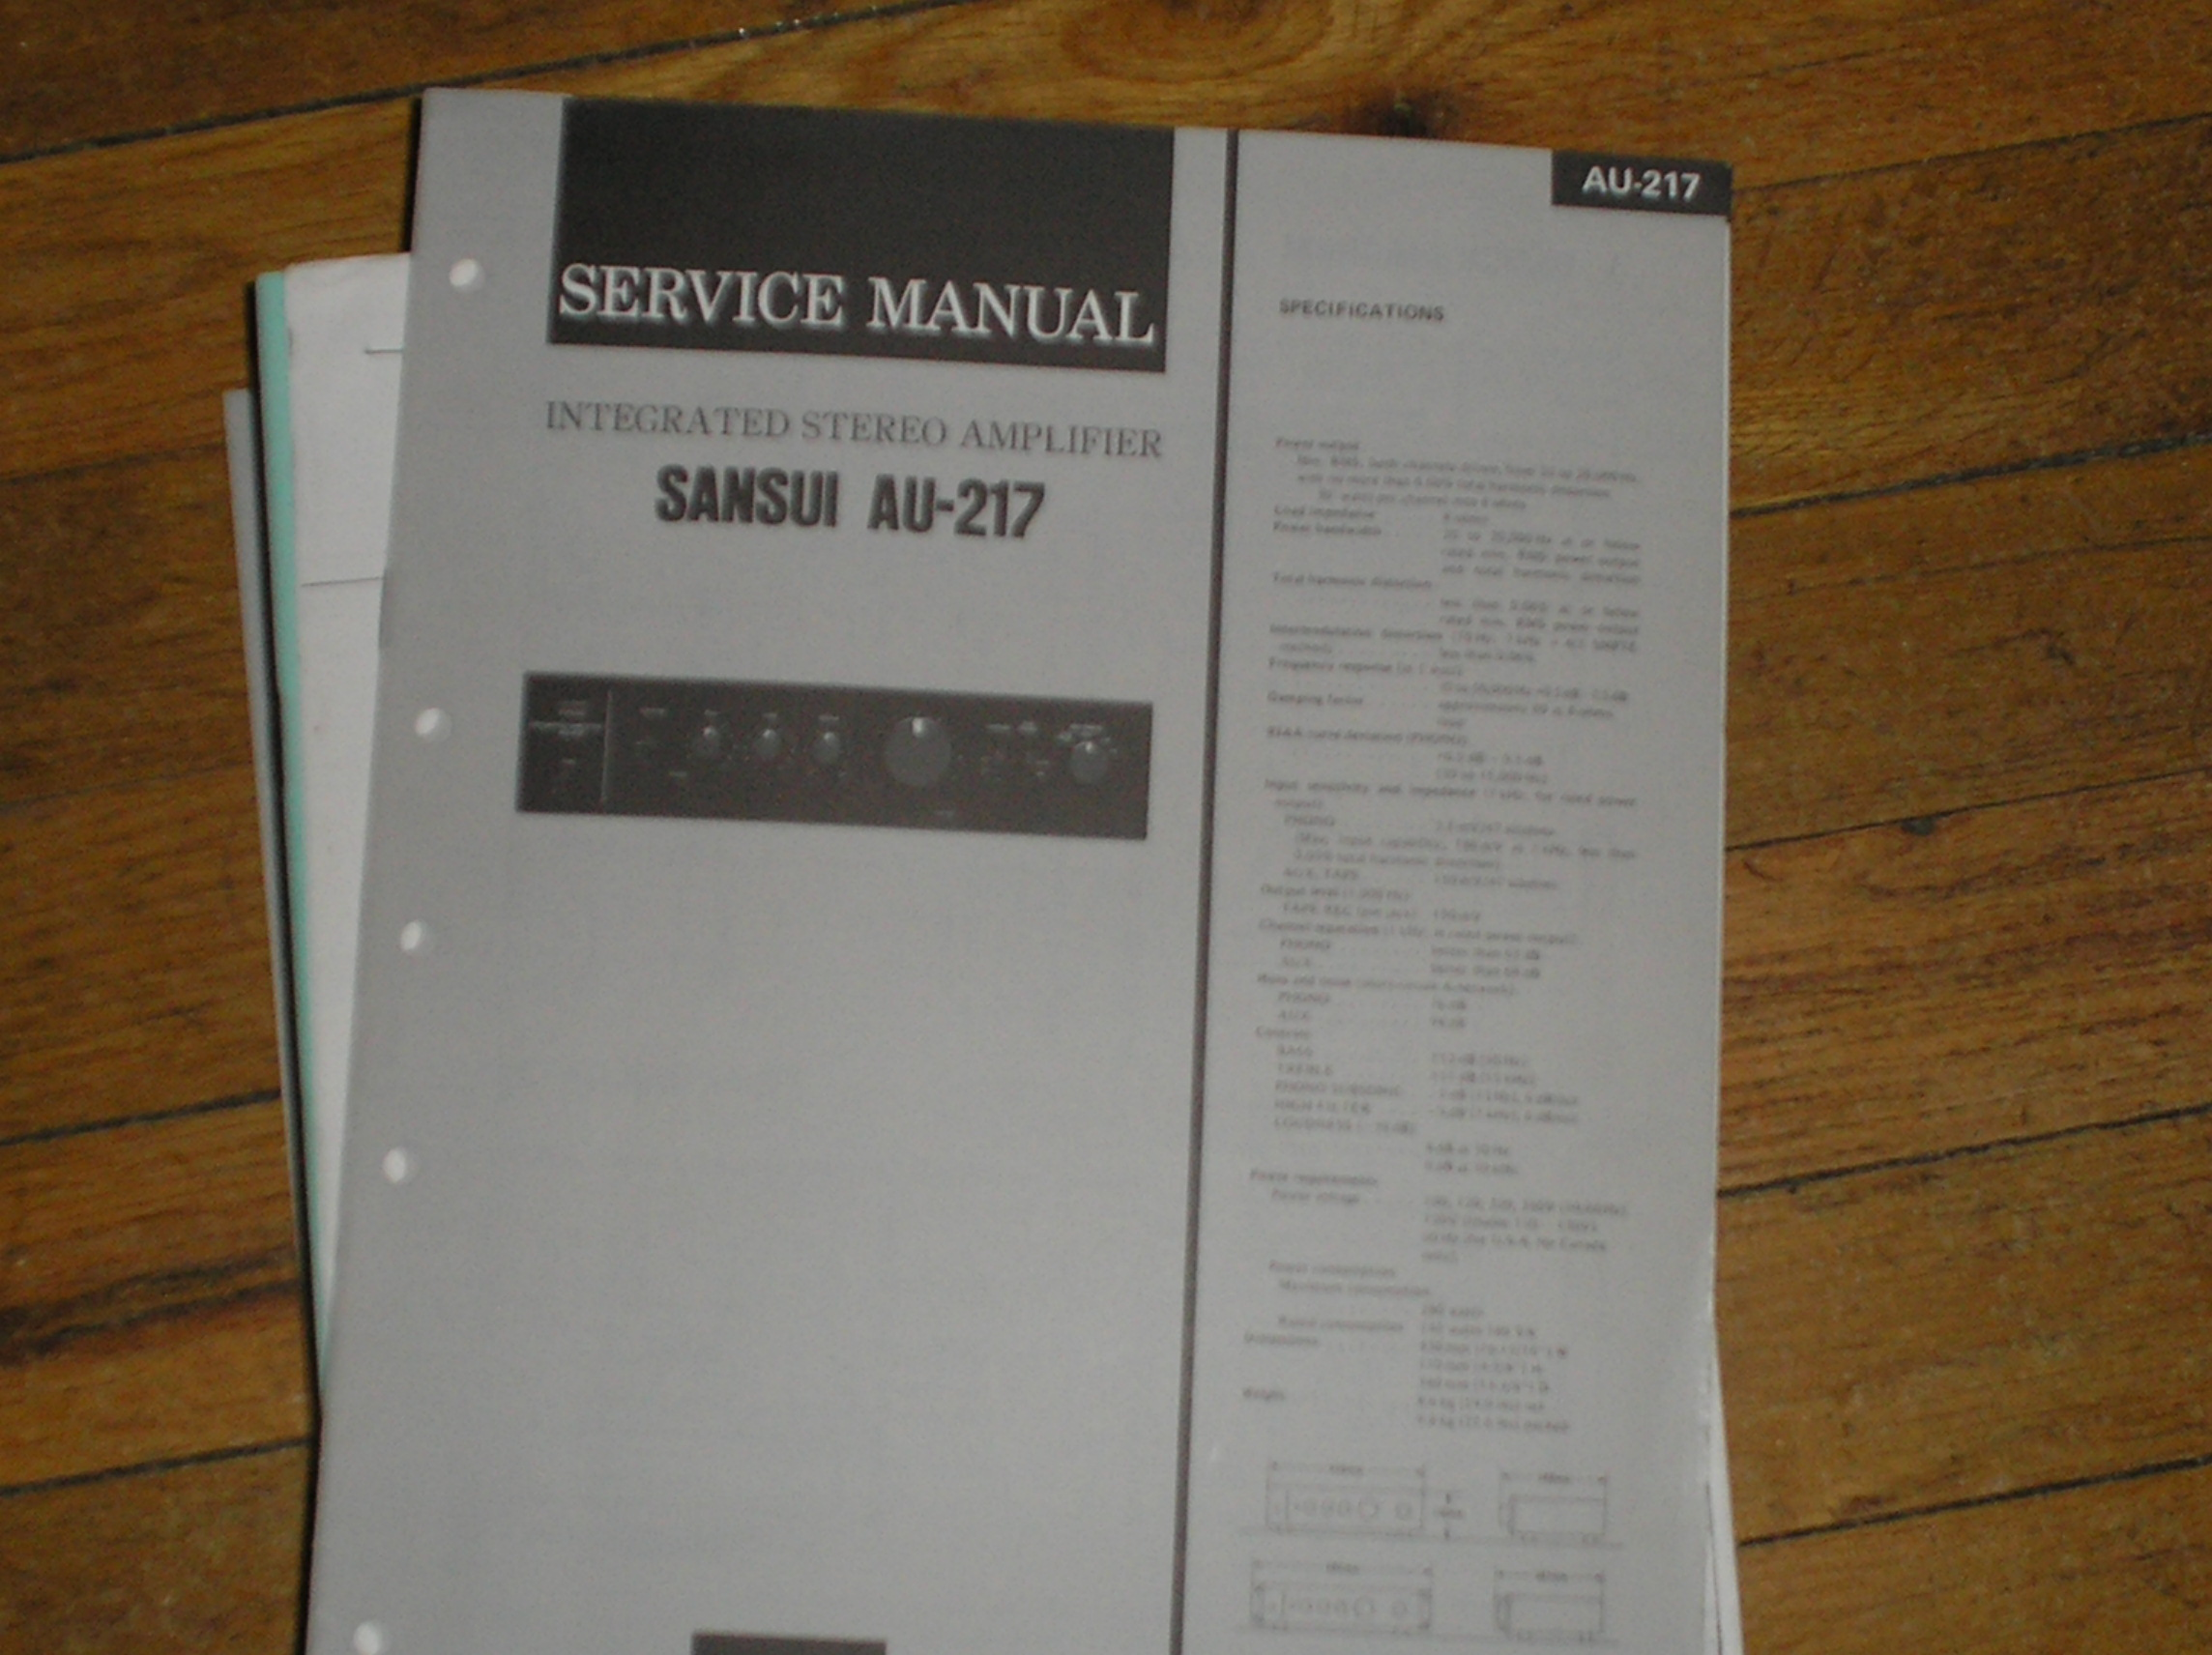 AU-217 Amplifier Service Manual